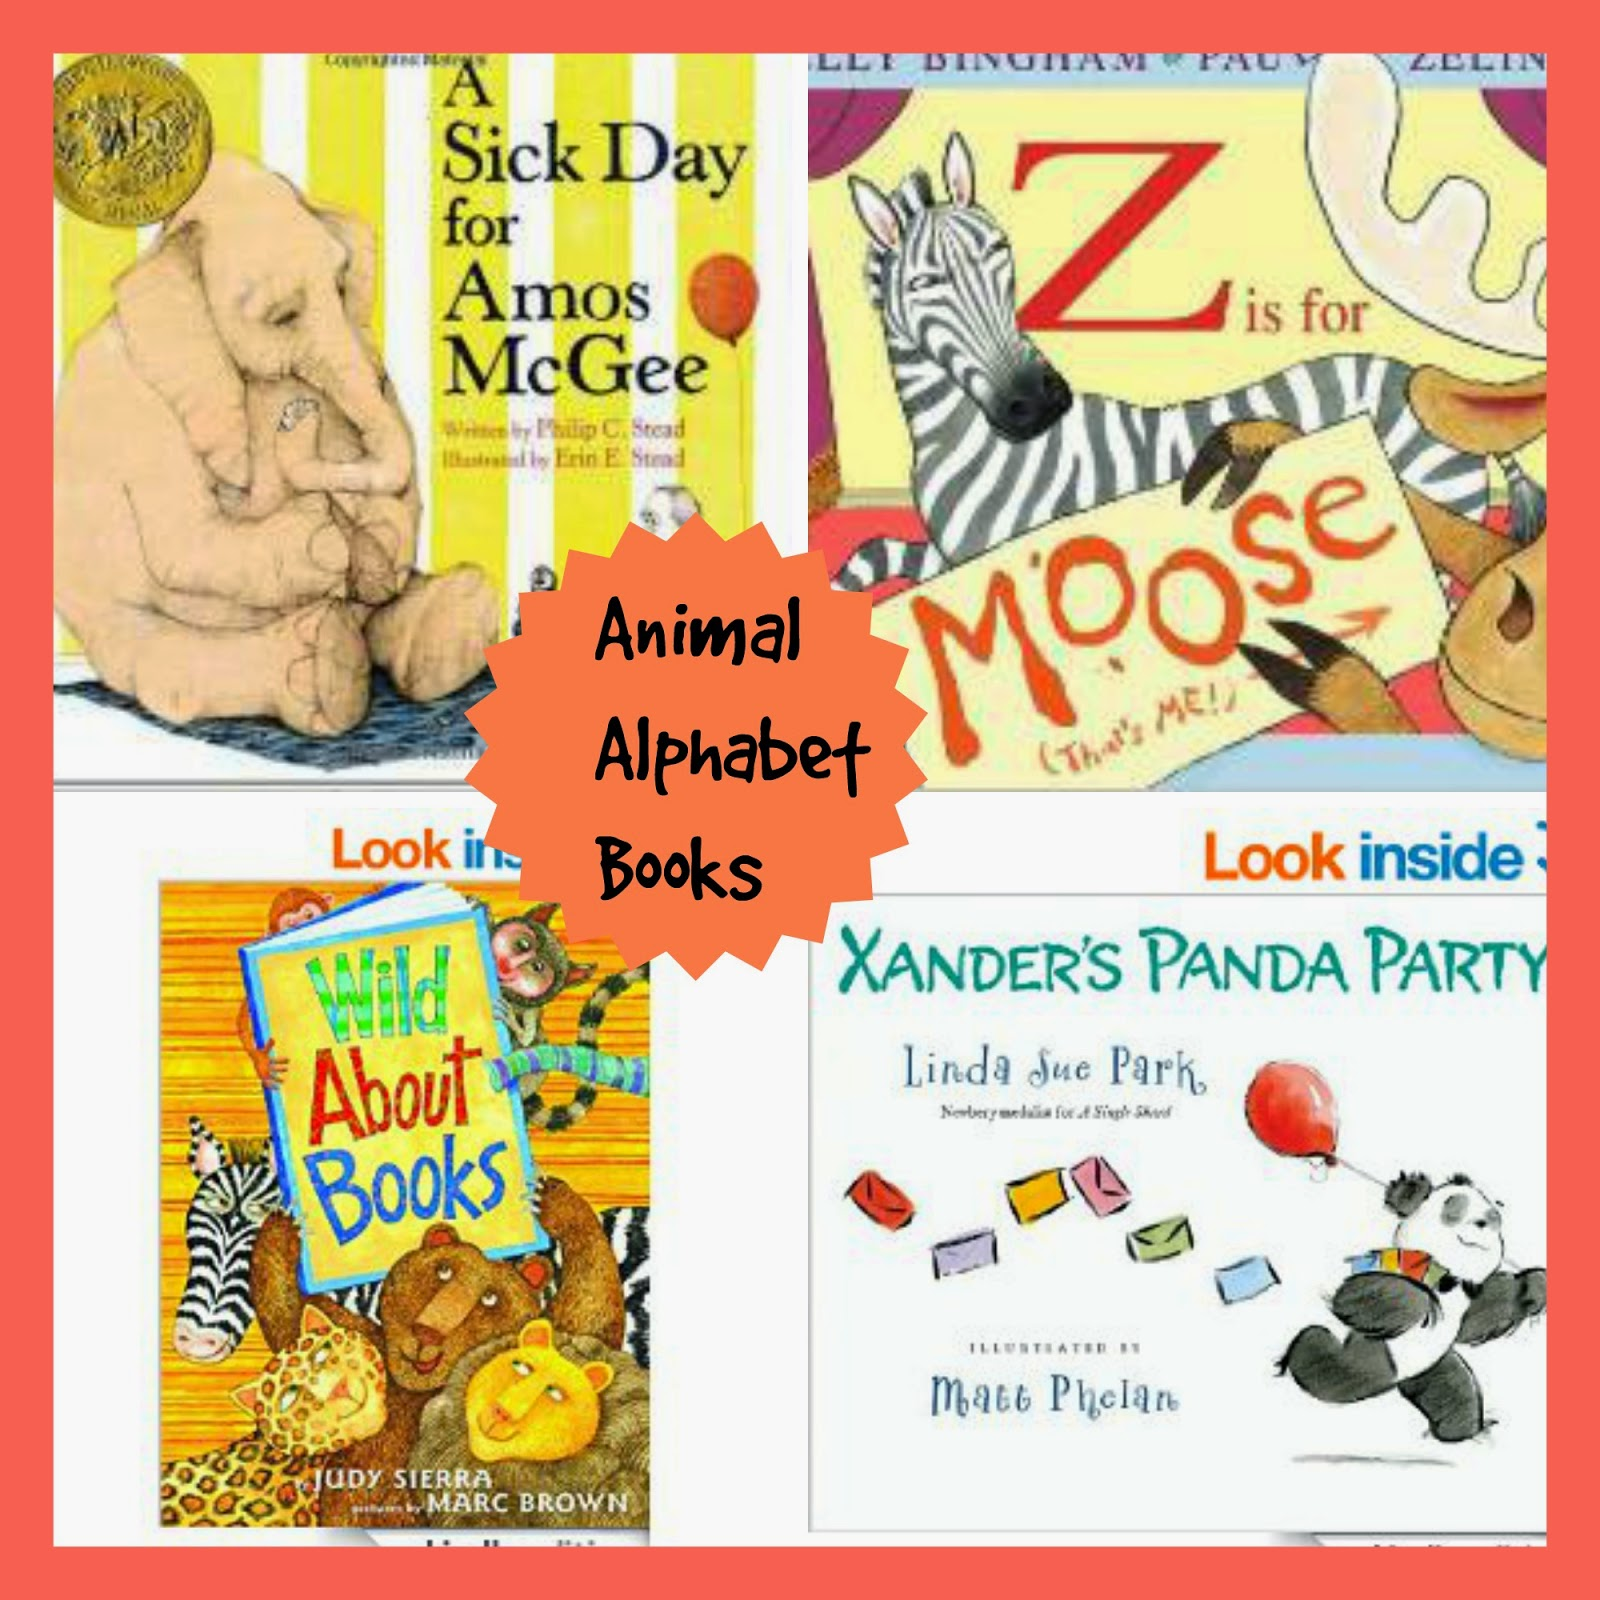 Animal Alphabet Books